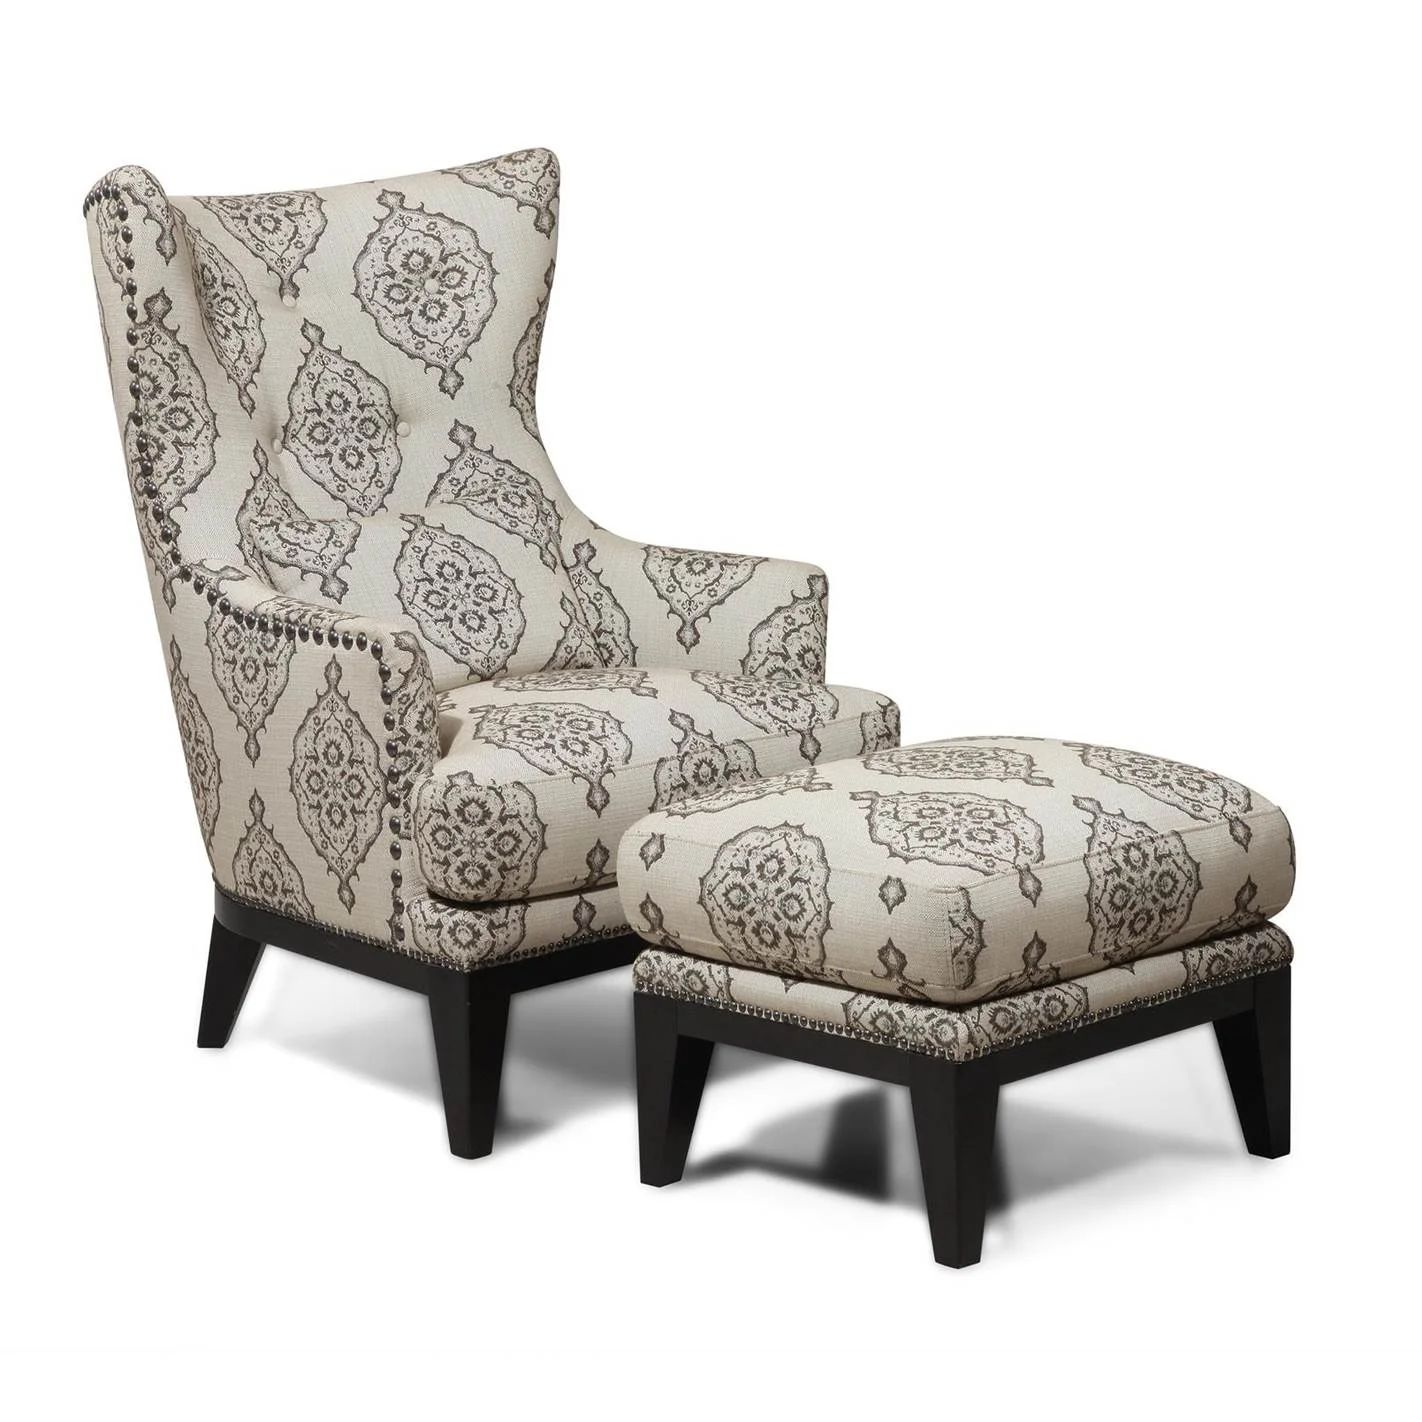 Darby home co reg baltic wingback chair amp ottoman